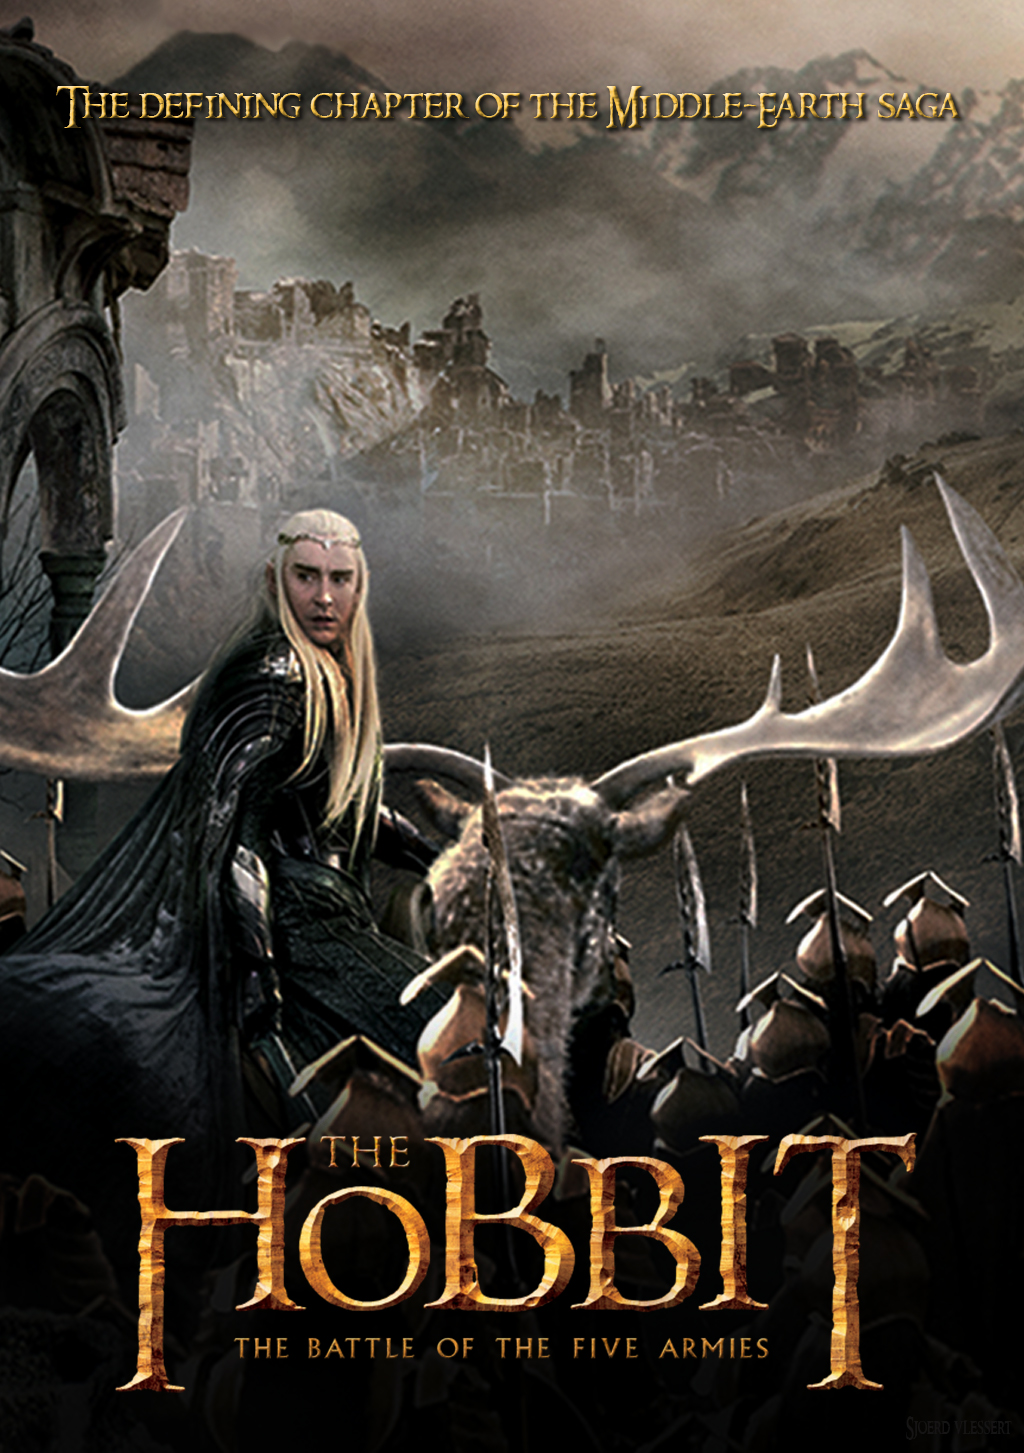 The Hobbit the battle of five armies™ poster - The Hobbit ...